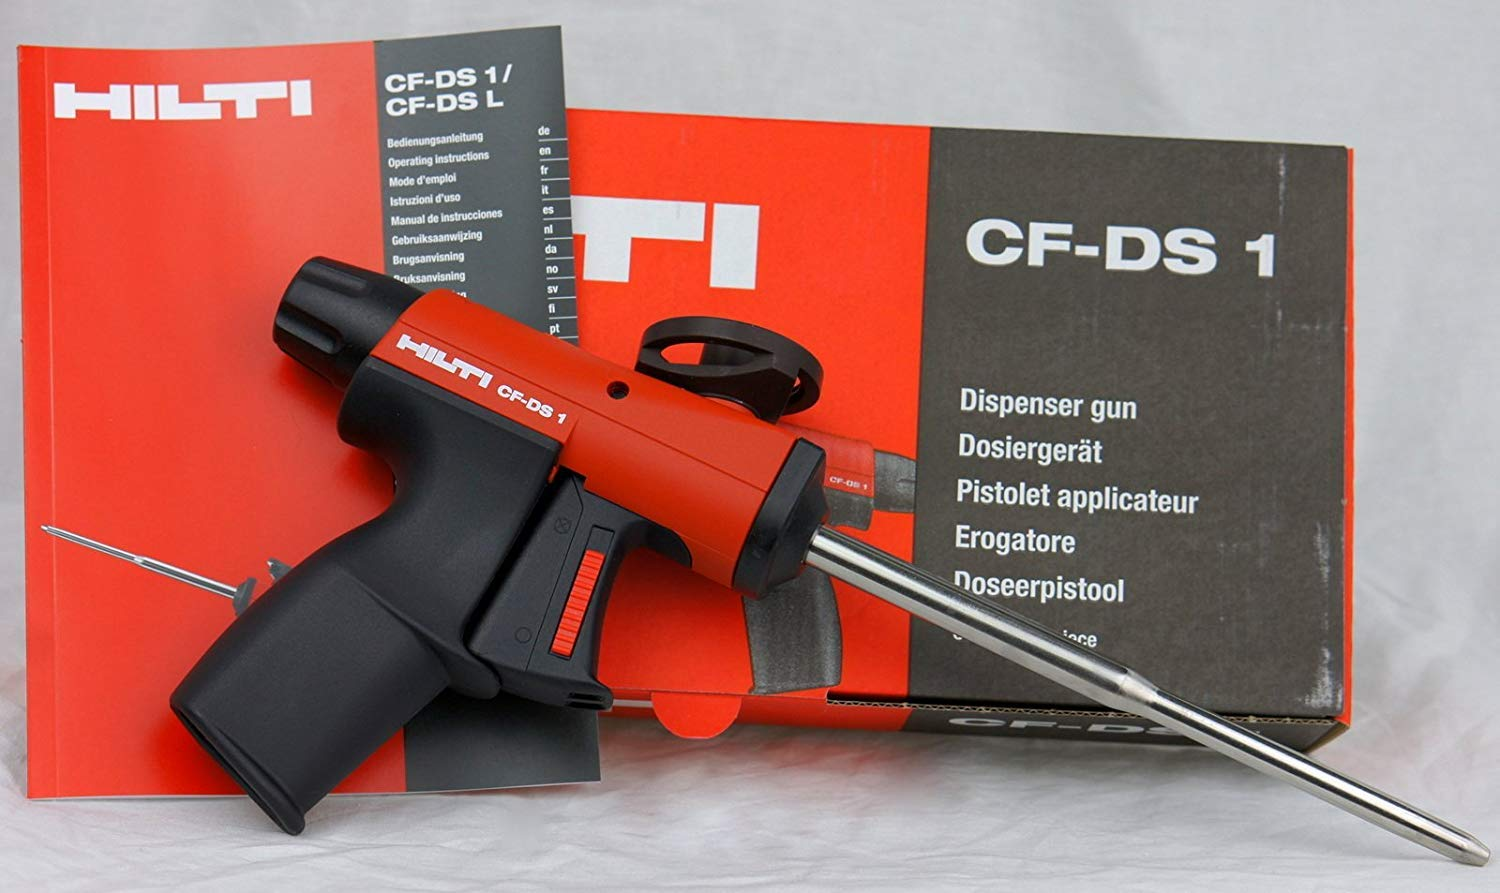 cf-ds1 Hilti Deluxe dispensador de espuma aislante sellador cf-ds-1: Amazon.es: Jardín